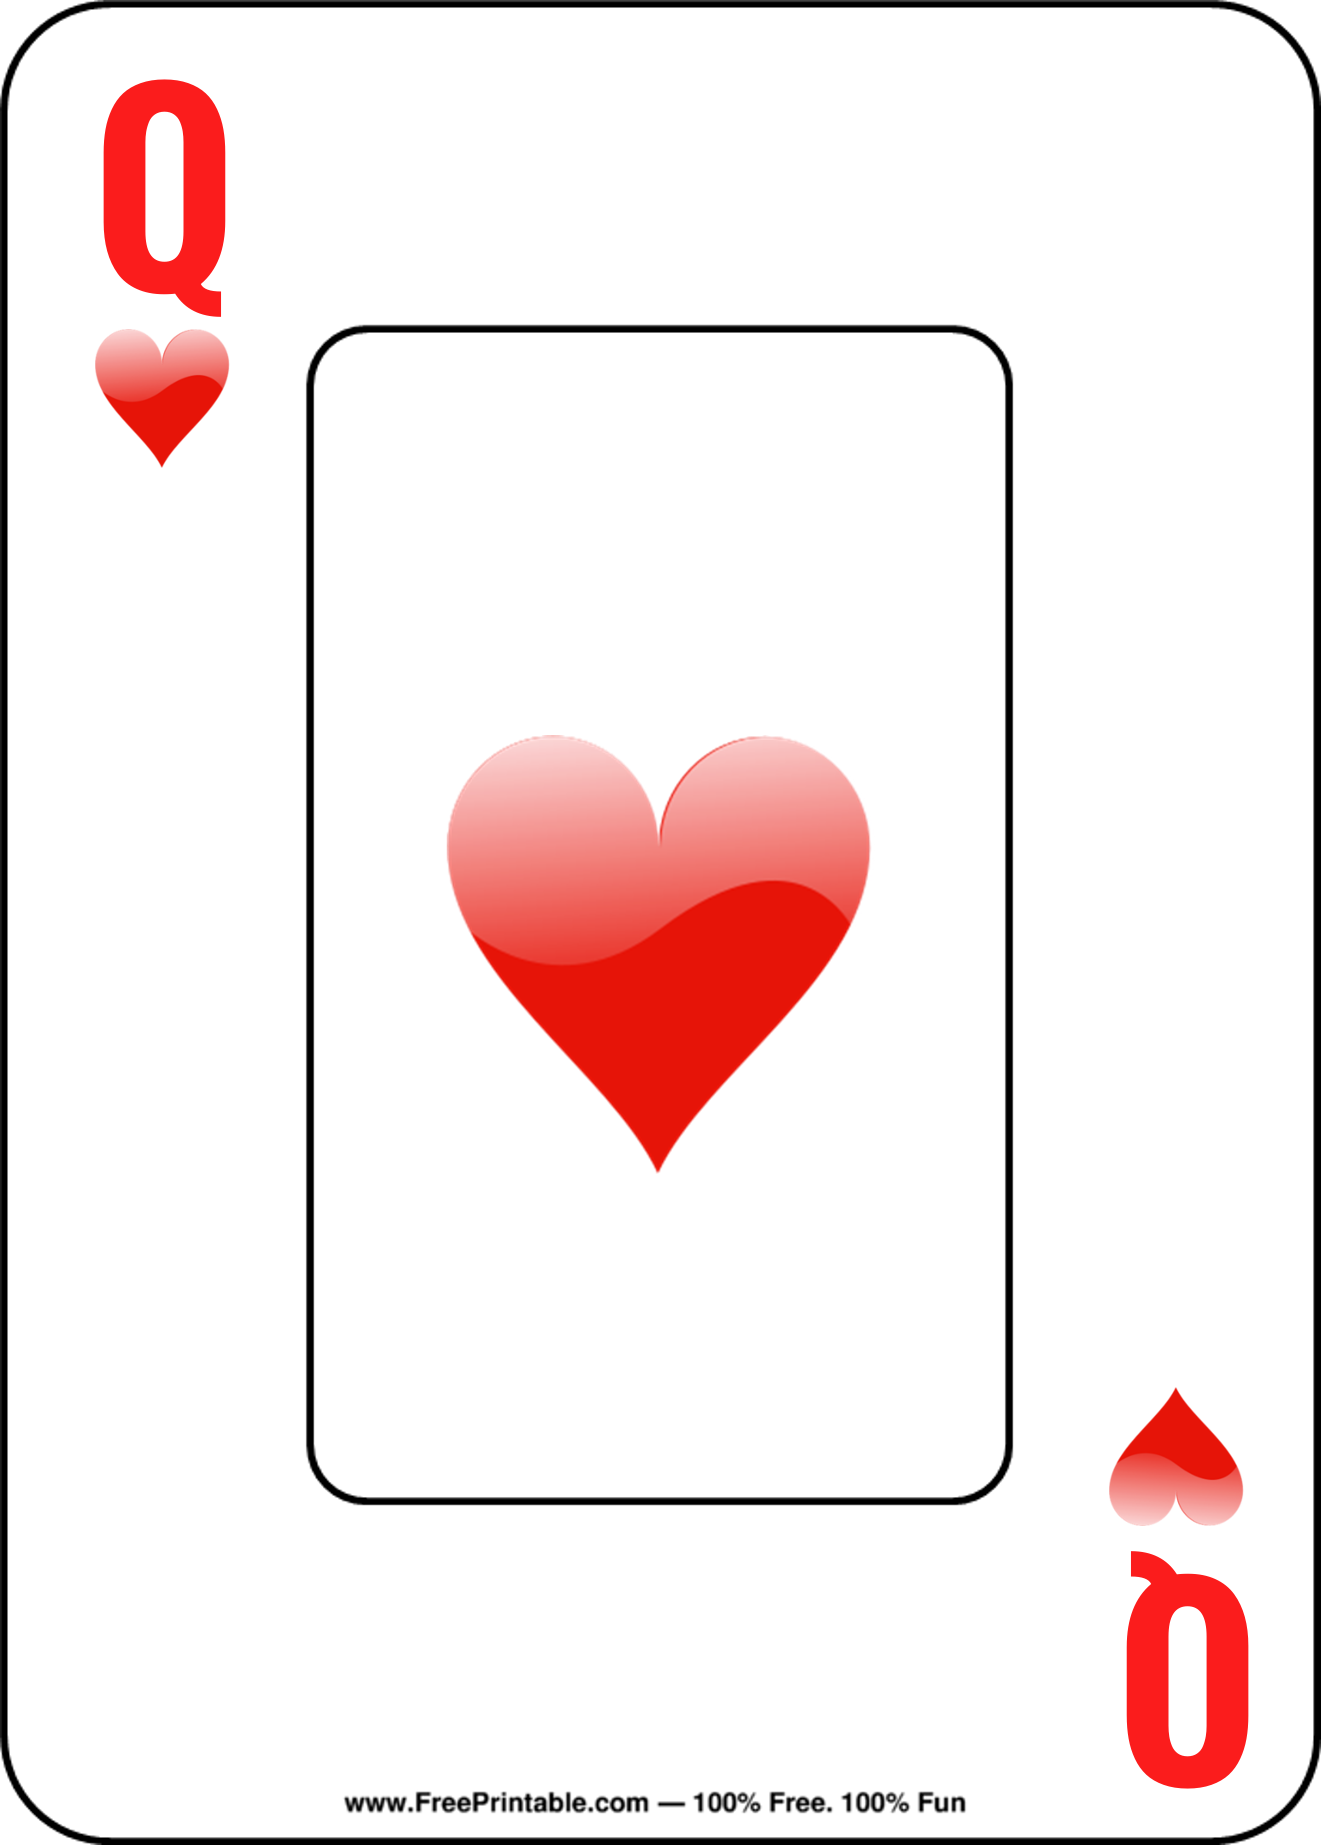 Customize Your Free Printable Queen Of Hearts Playing Card